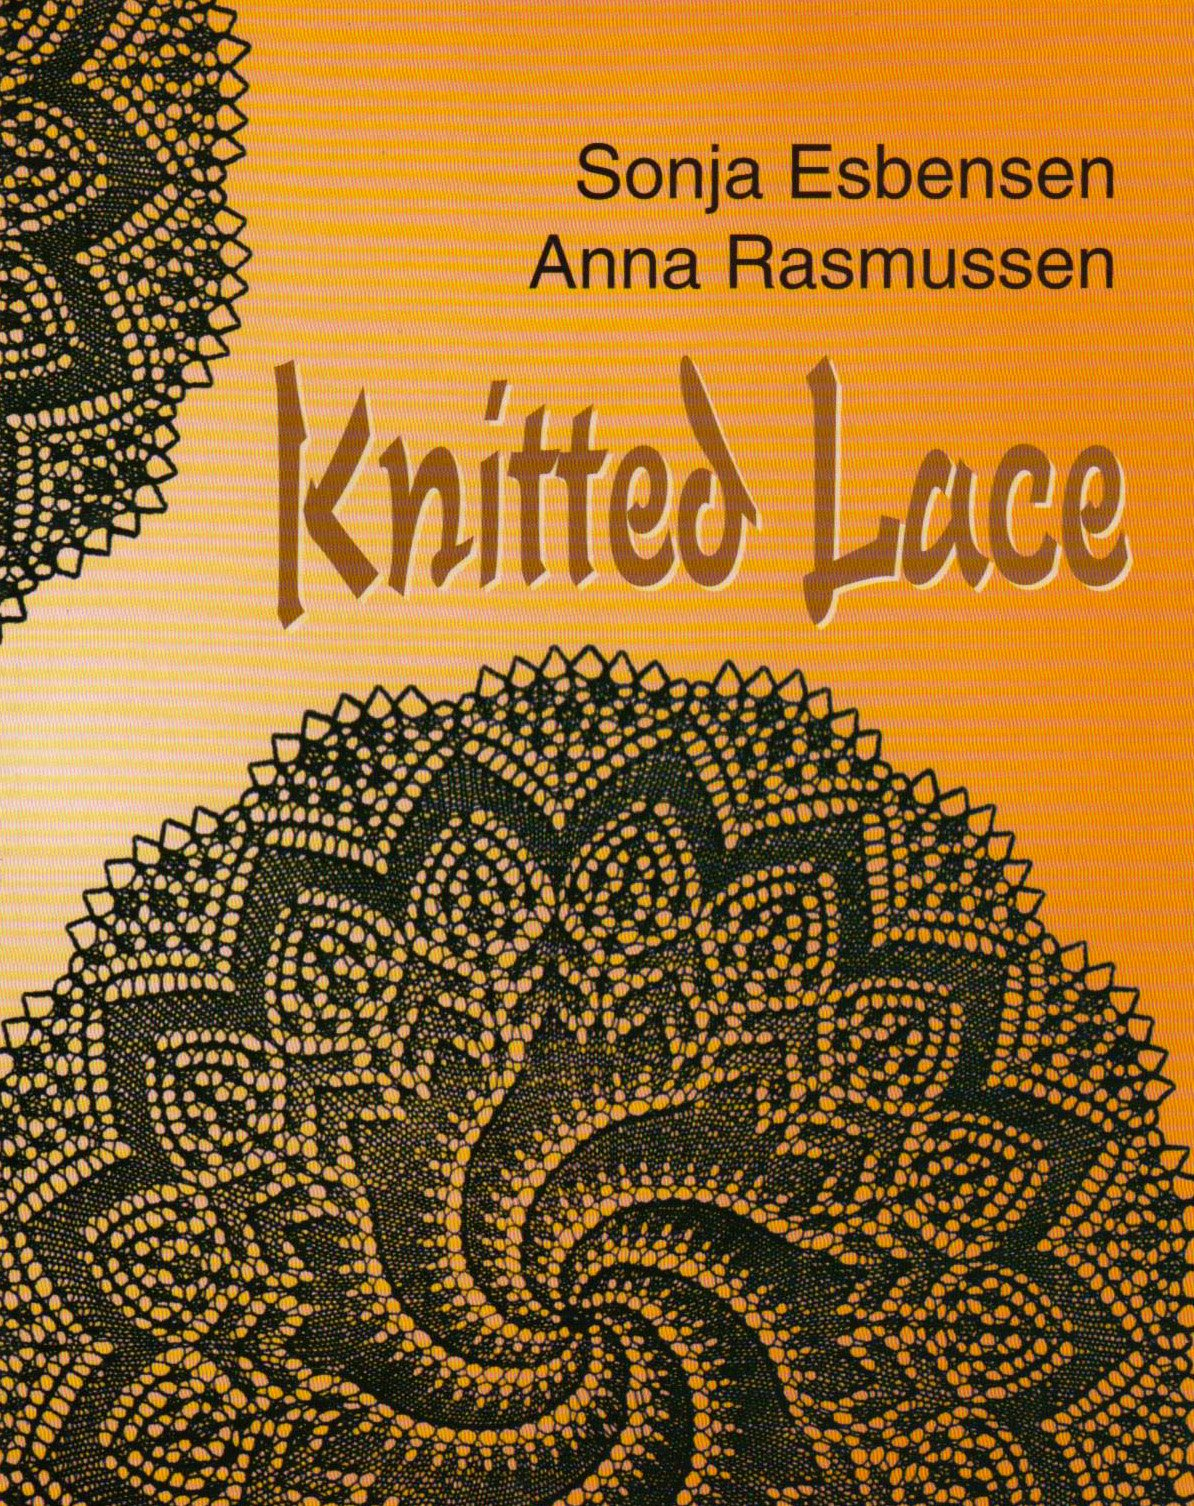 Knitted lace sonja esbensen 9788778470461 amazon books bankloansurffo Images